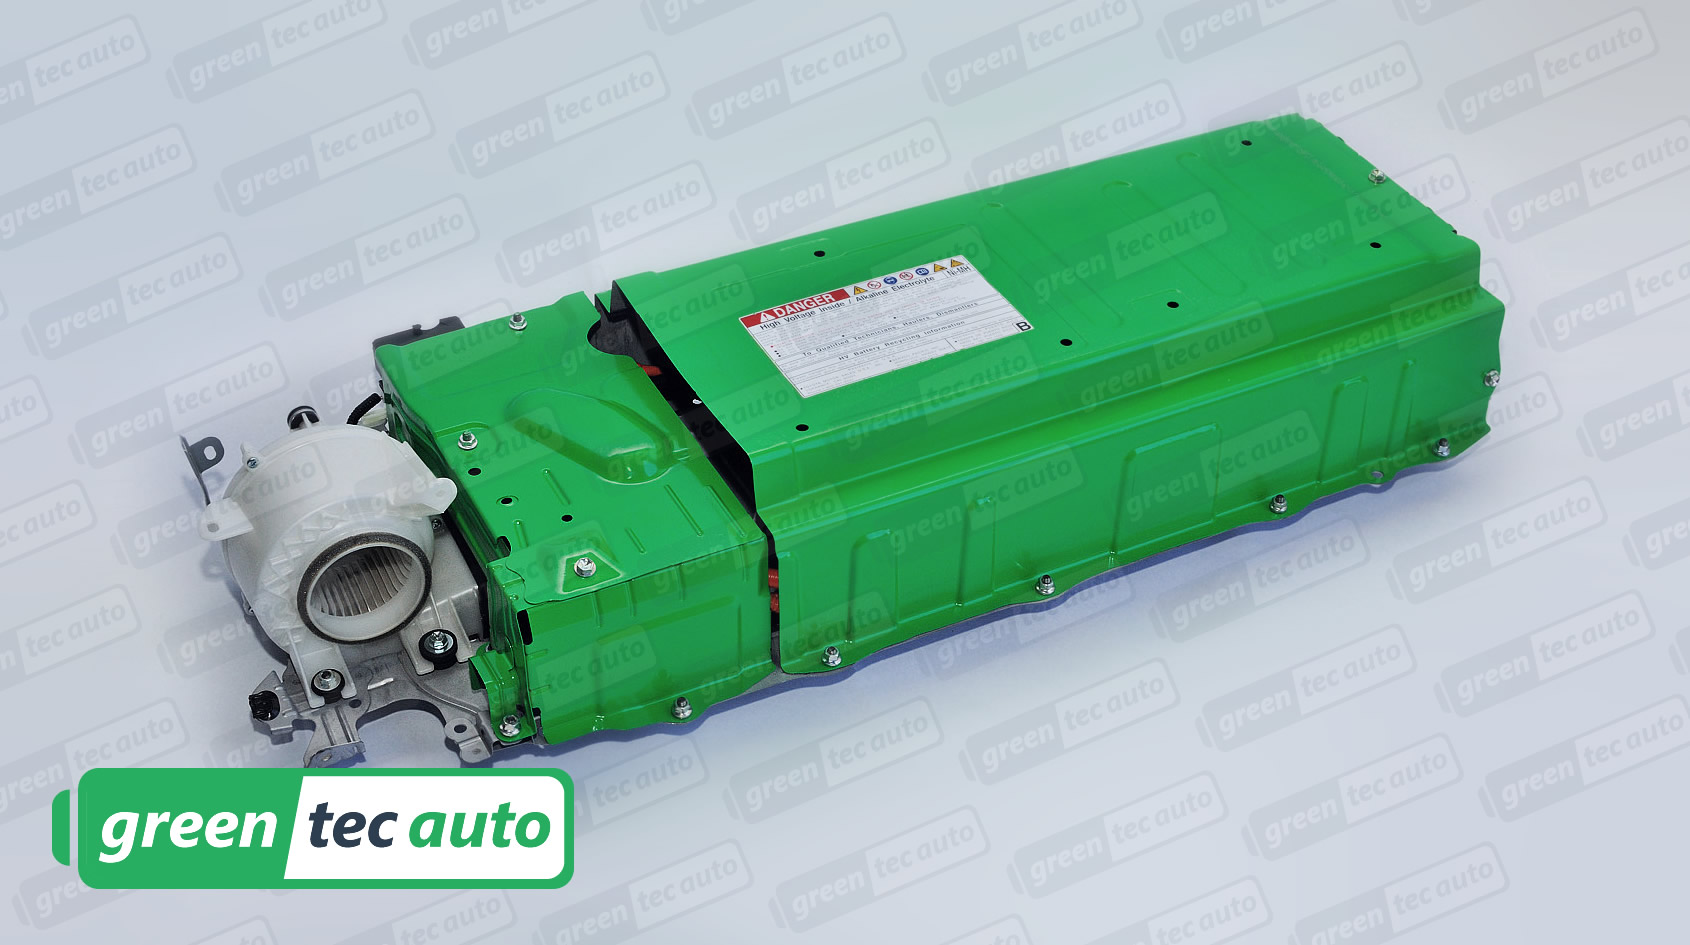 2007 Toyota Hybrid Battery Replacement >> Lexus CT 200h Hybrid Battery Replacement